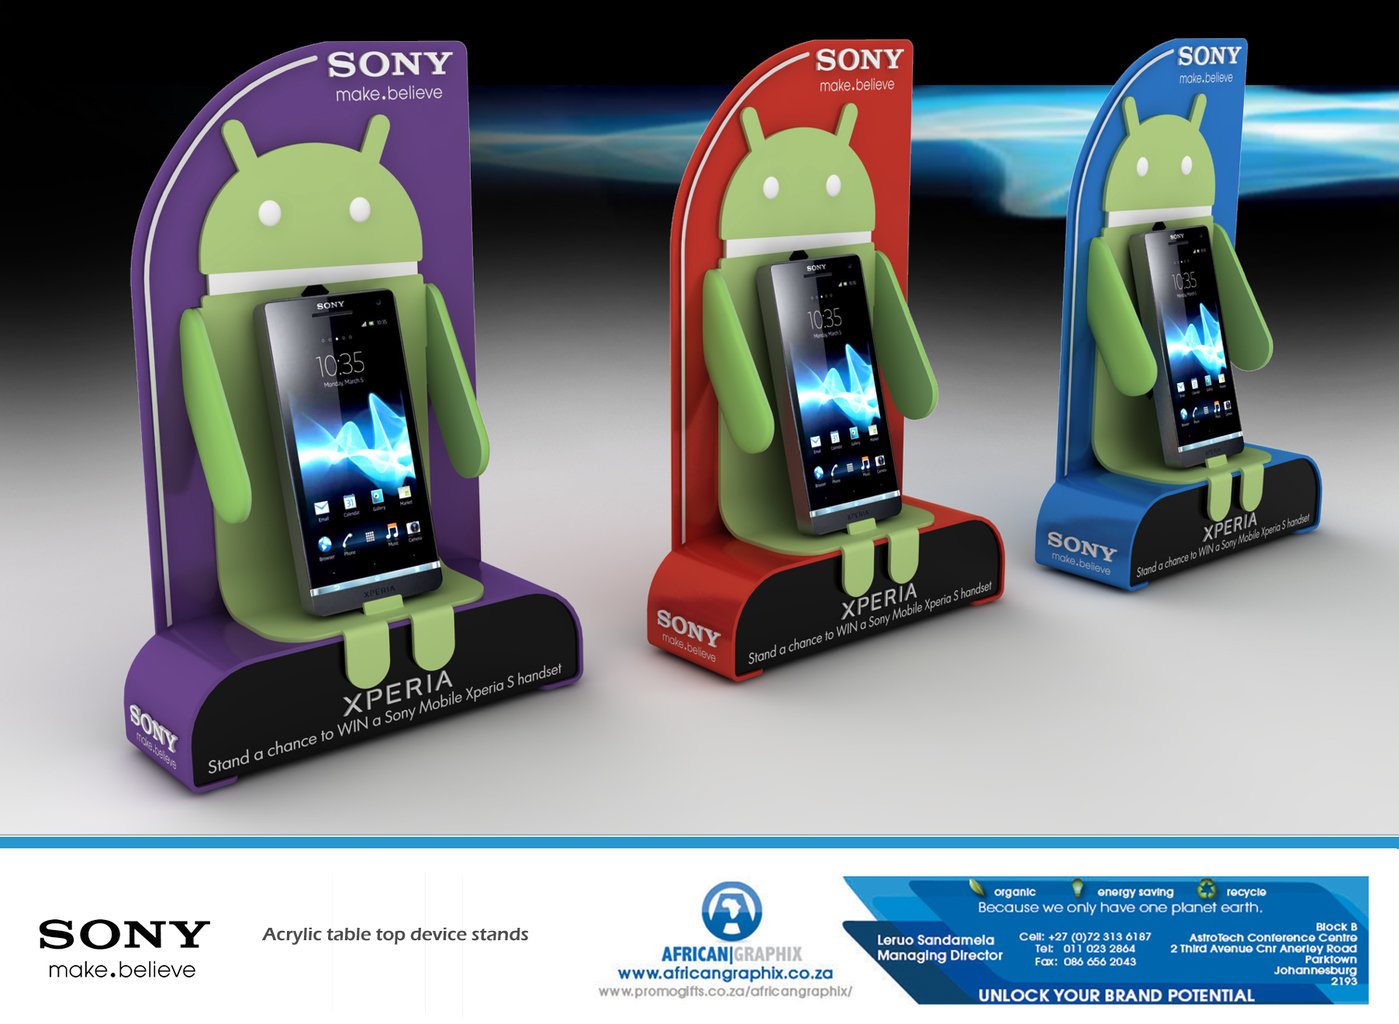 Exhibition Stand Designs For Sale : Point of sale display stands by germaner product design